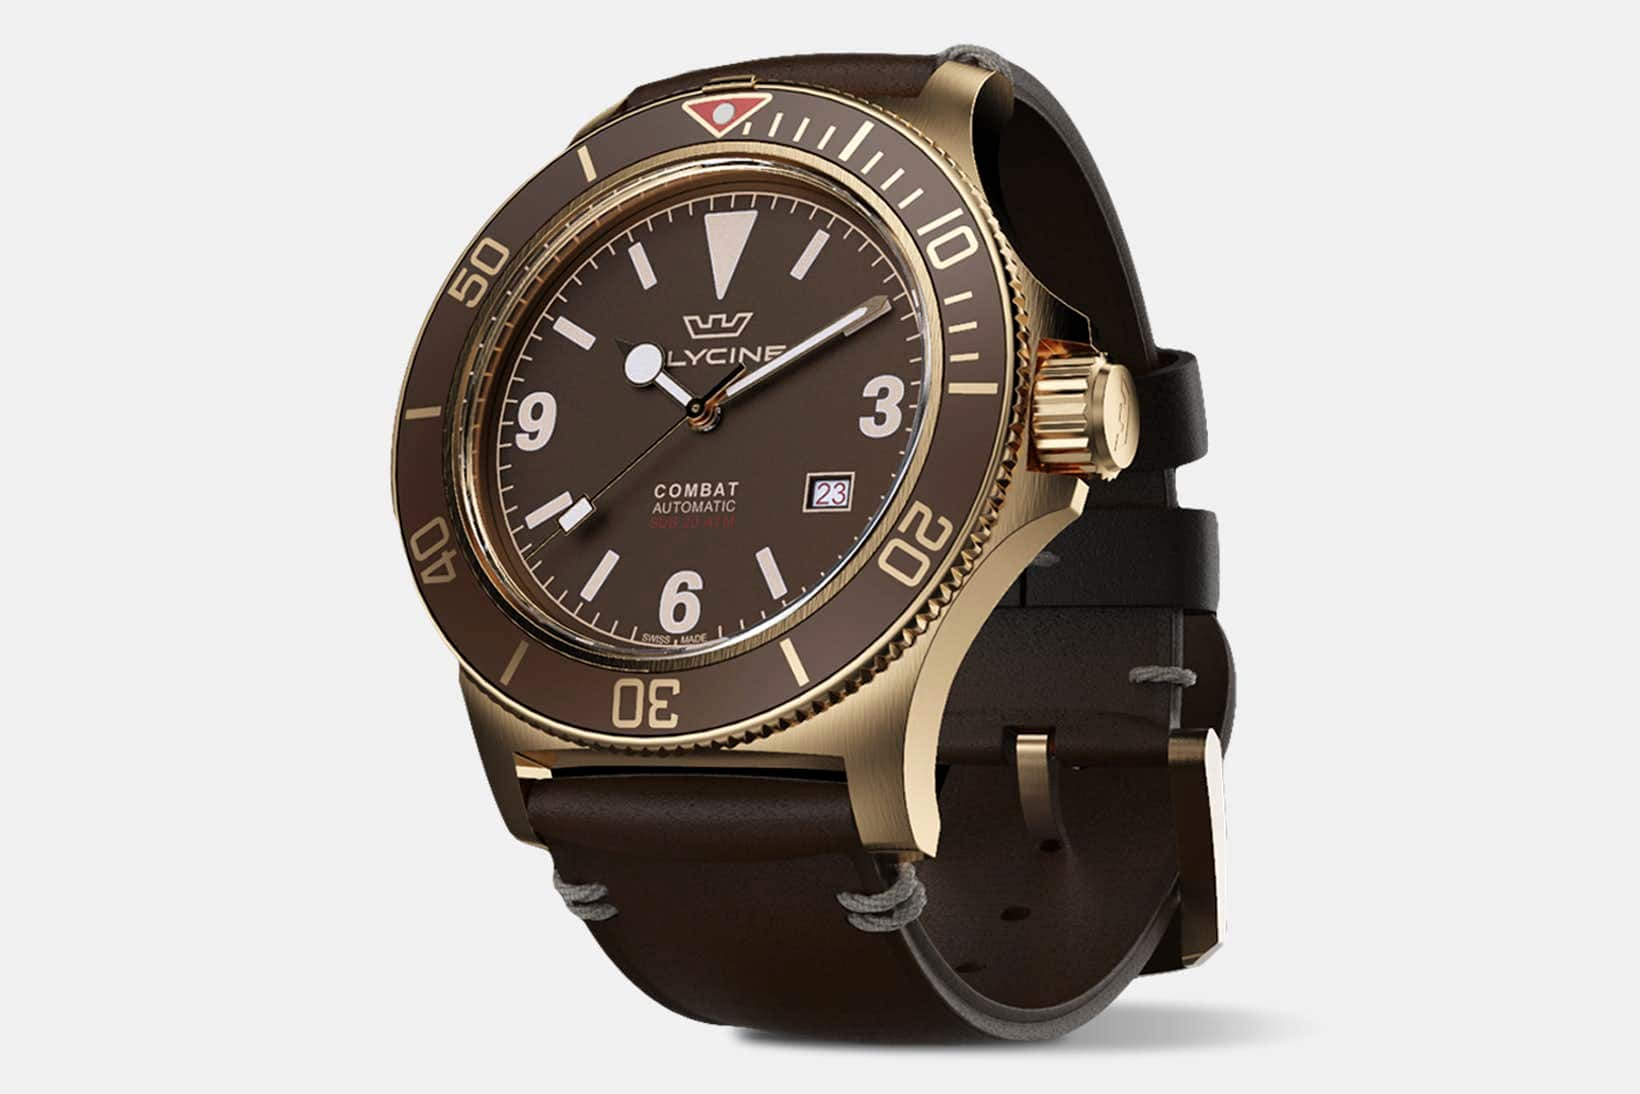 Glycine Combat Sub Bronze Automatic Watch $389 + Free Shipping